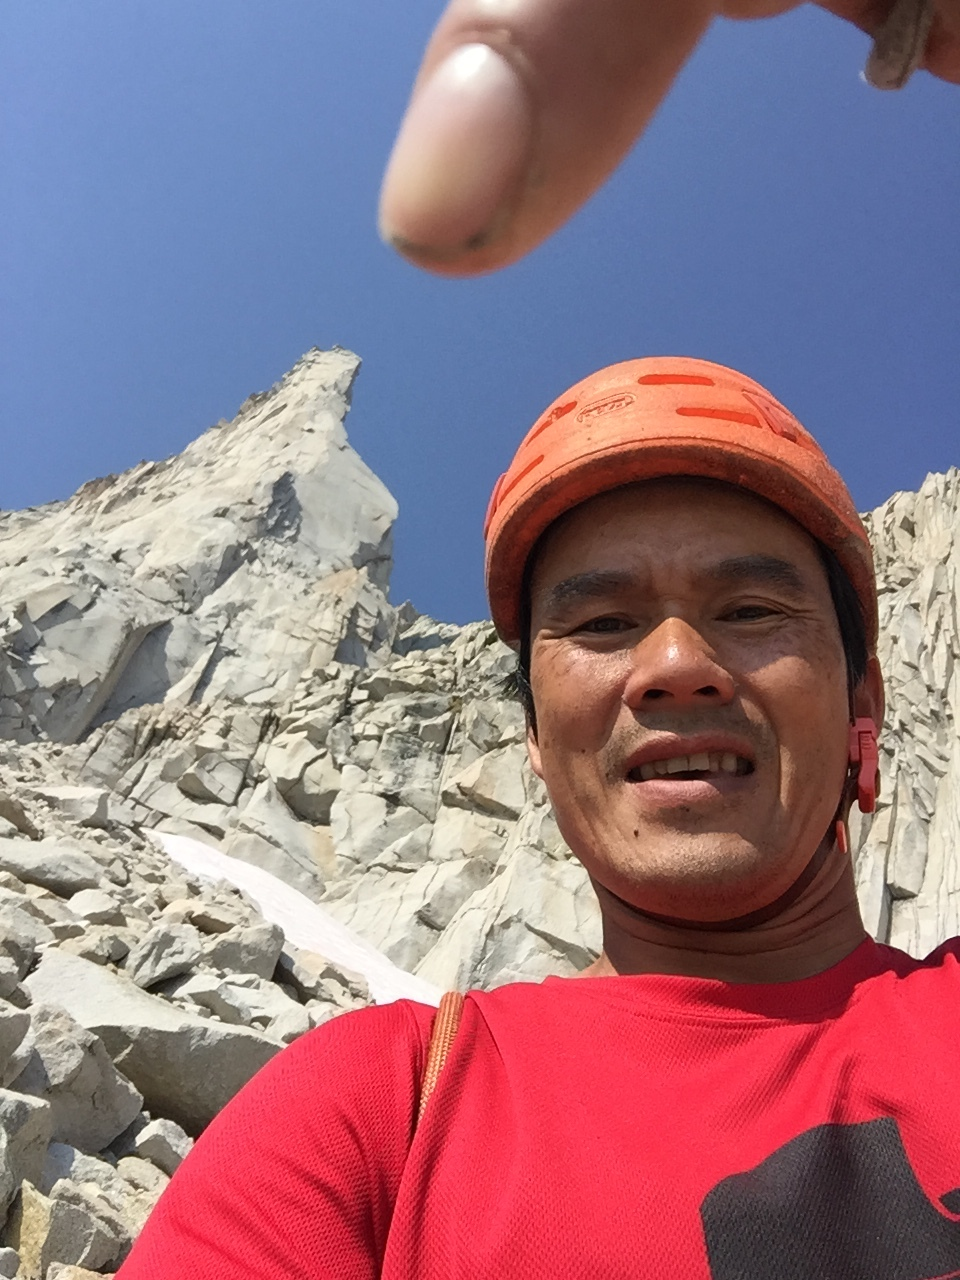 Kelvin Nguyen, Third Pillar of Dana, Tuolumne Meadows, Yosemite, CA